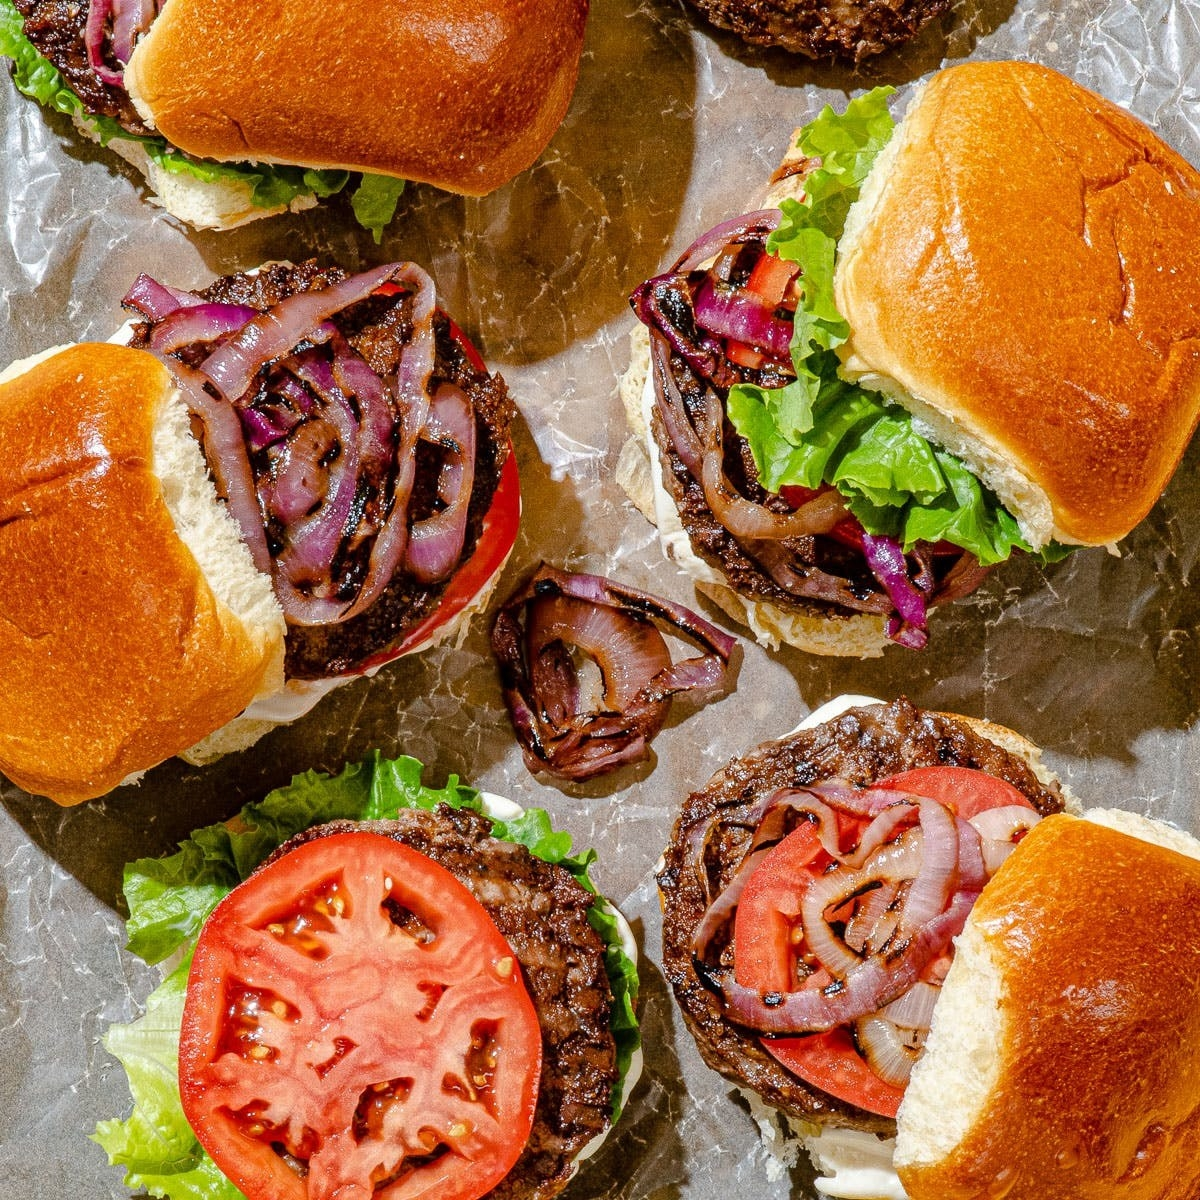 Five grilled hamburgers on buns with onions, tomato, and lattuce.